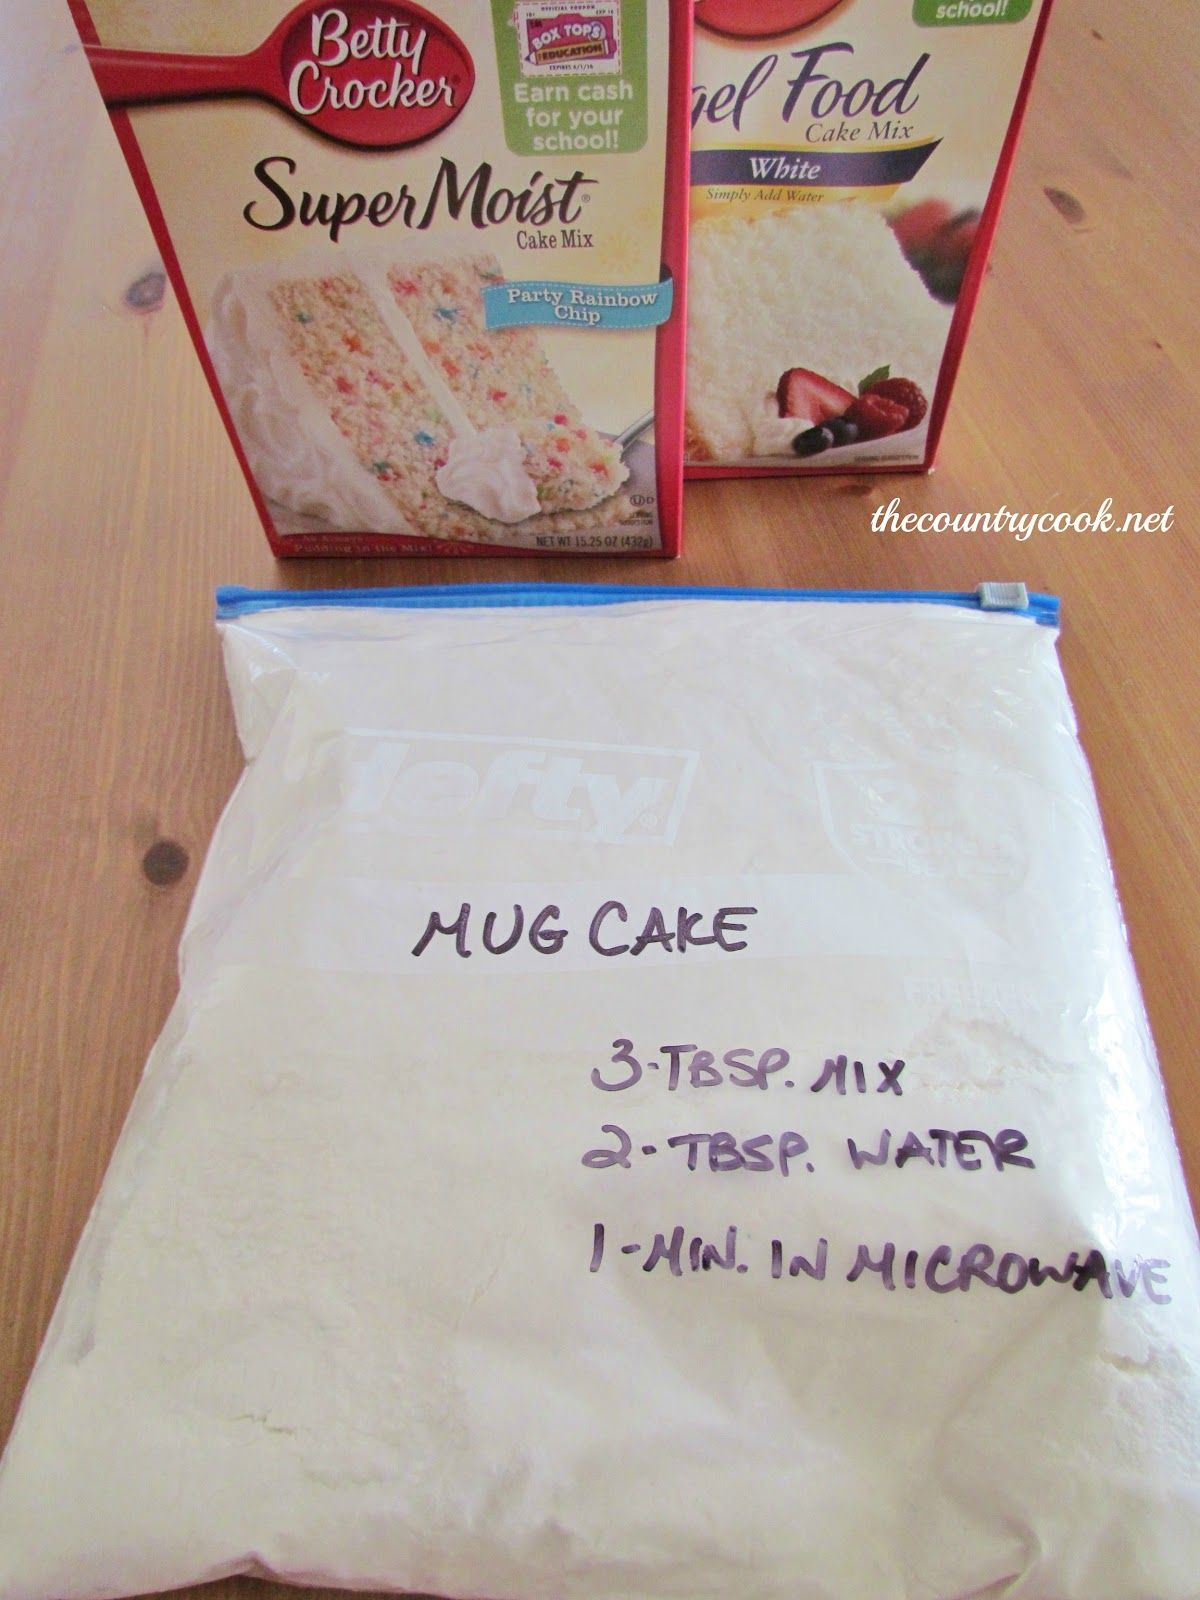 3 2 1 Microwave Mug Cake Recipe Mug Recipes Angel Food Cake Mix Recipes Mug Cake Microwave